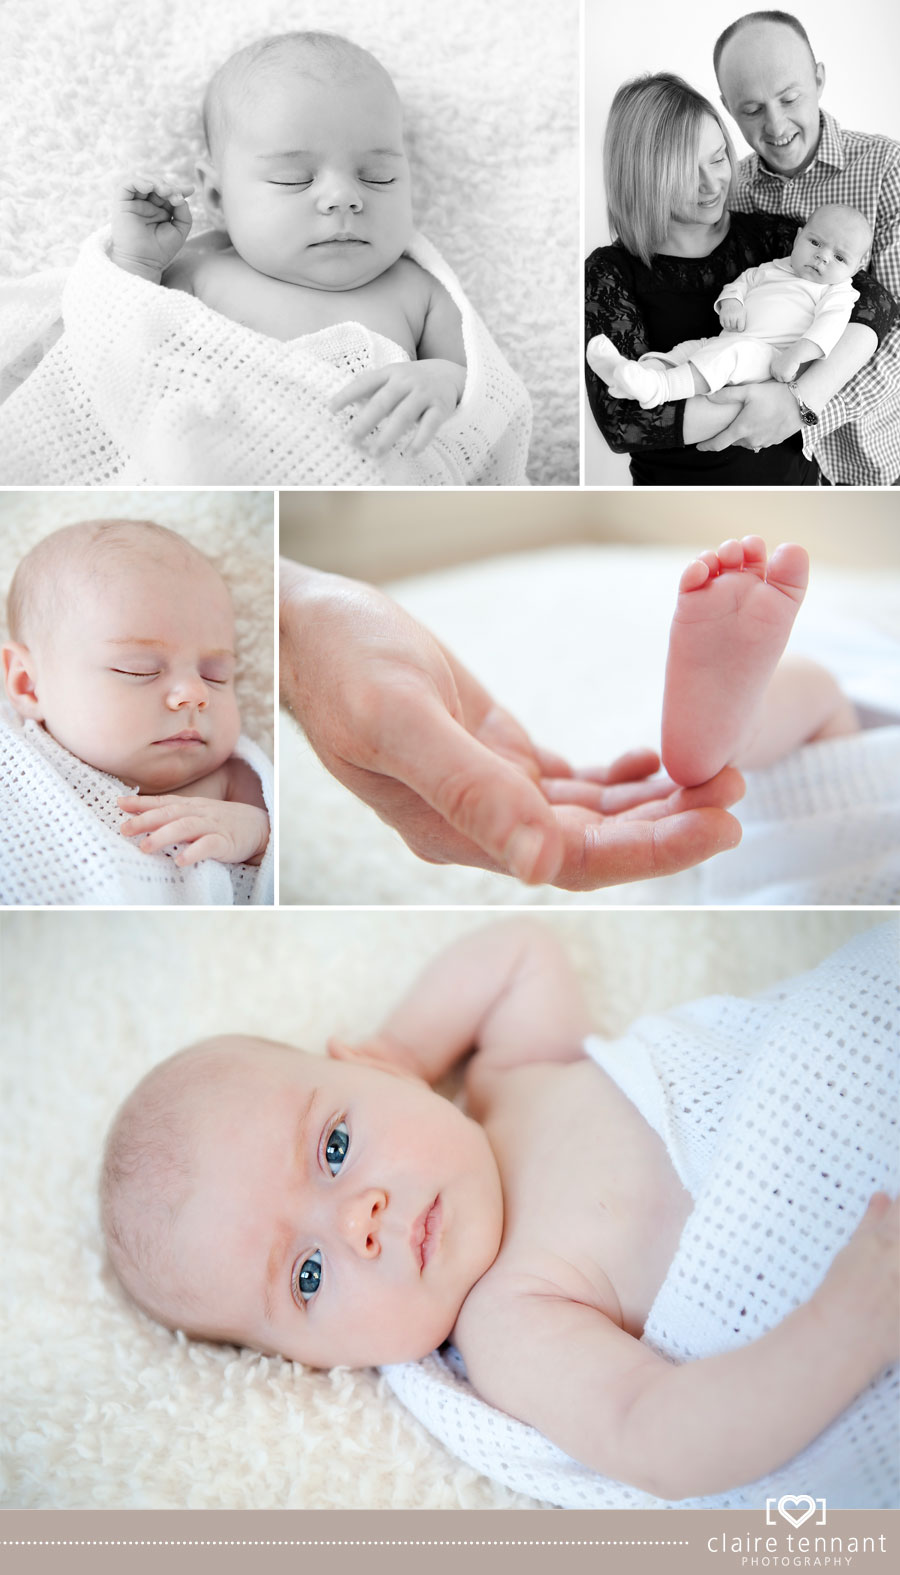 Newborn Baby Photography - Baby Aila, 1 month old